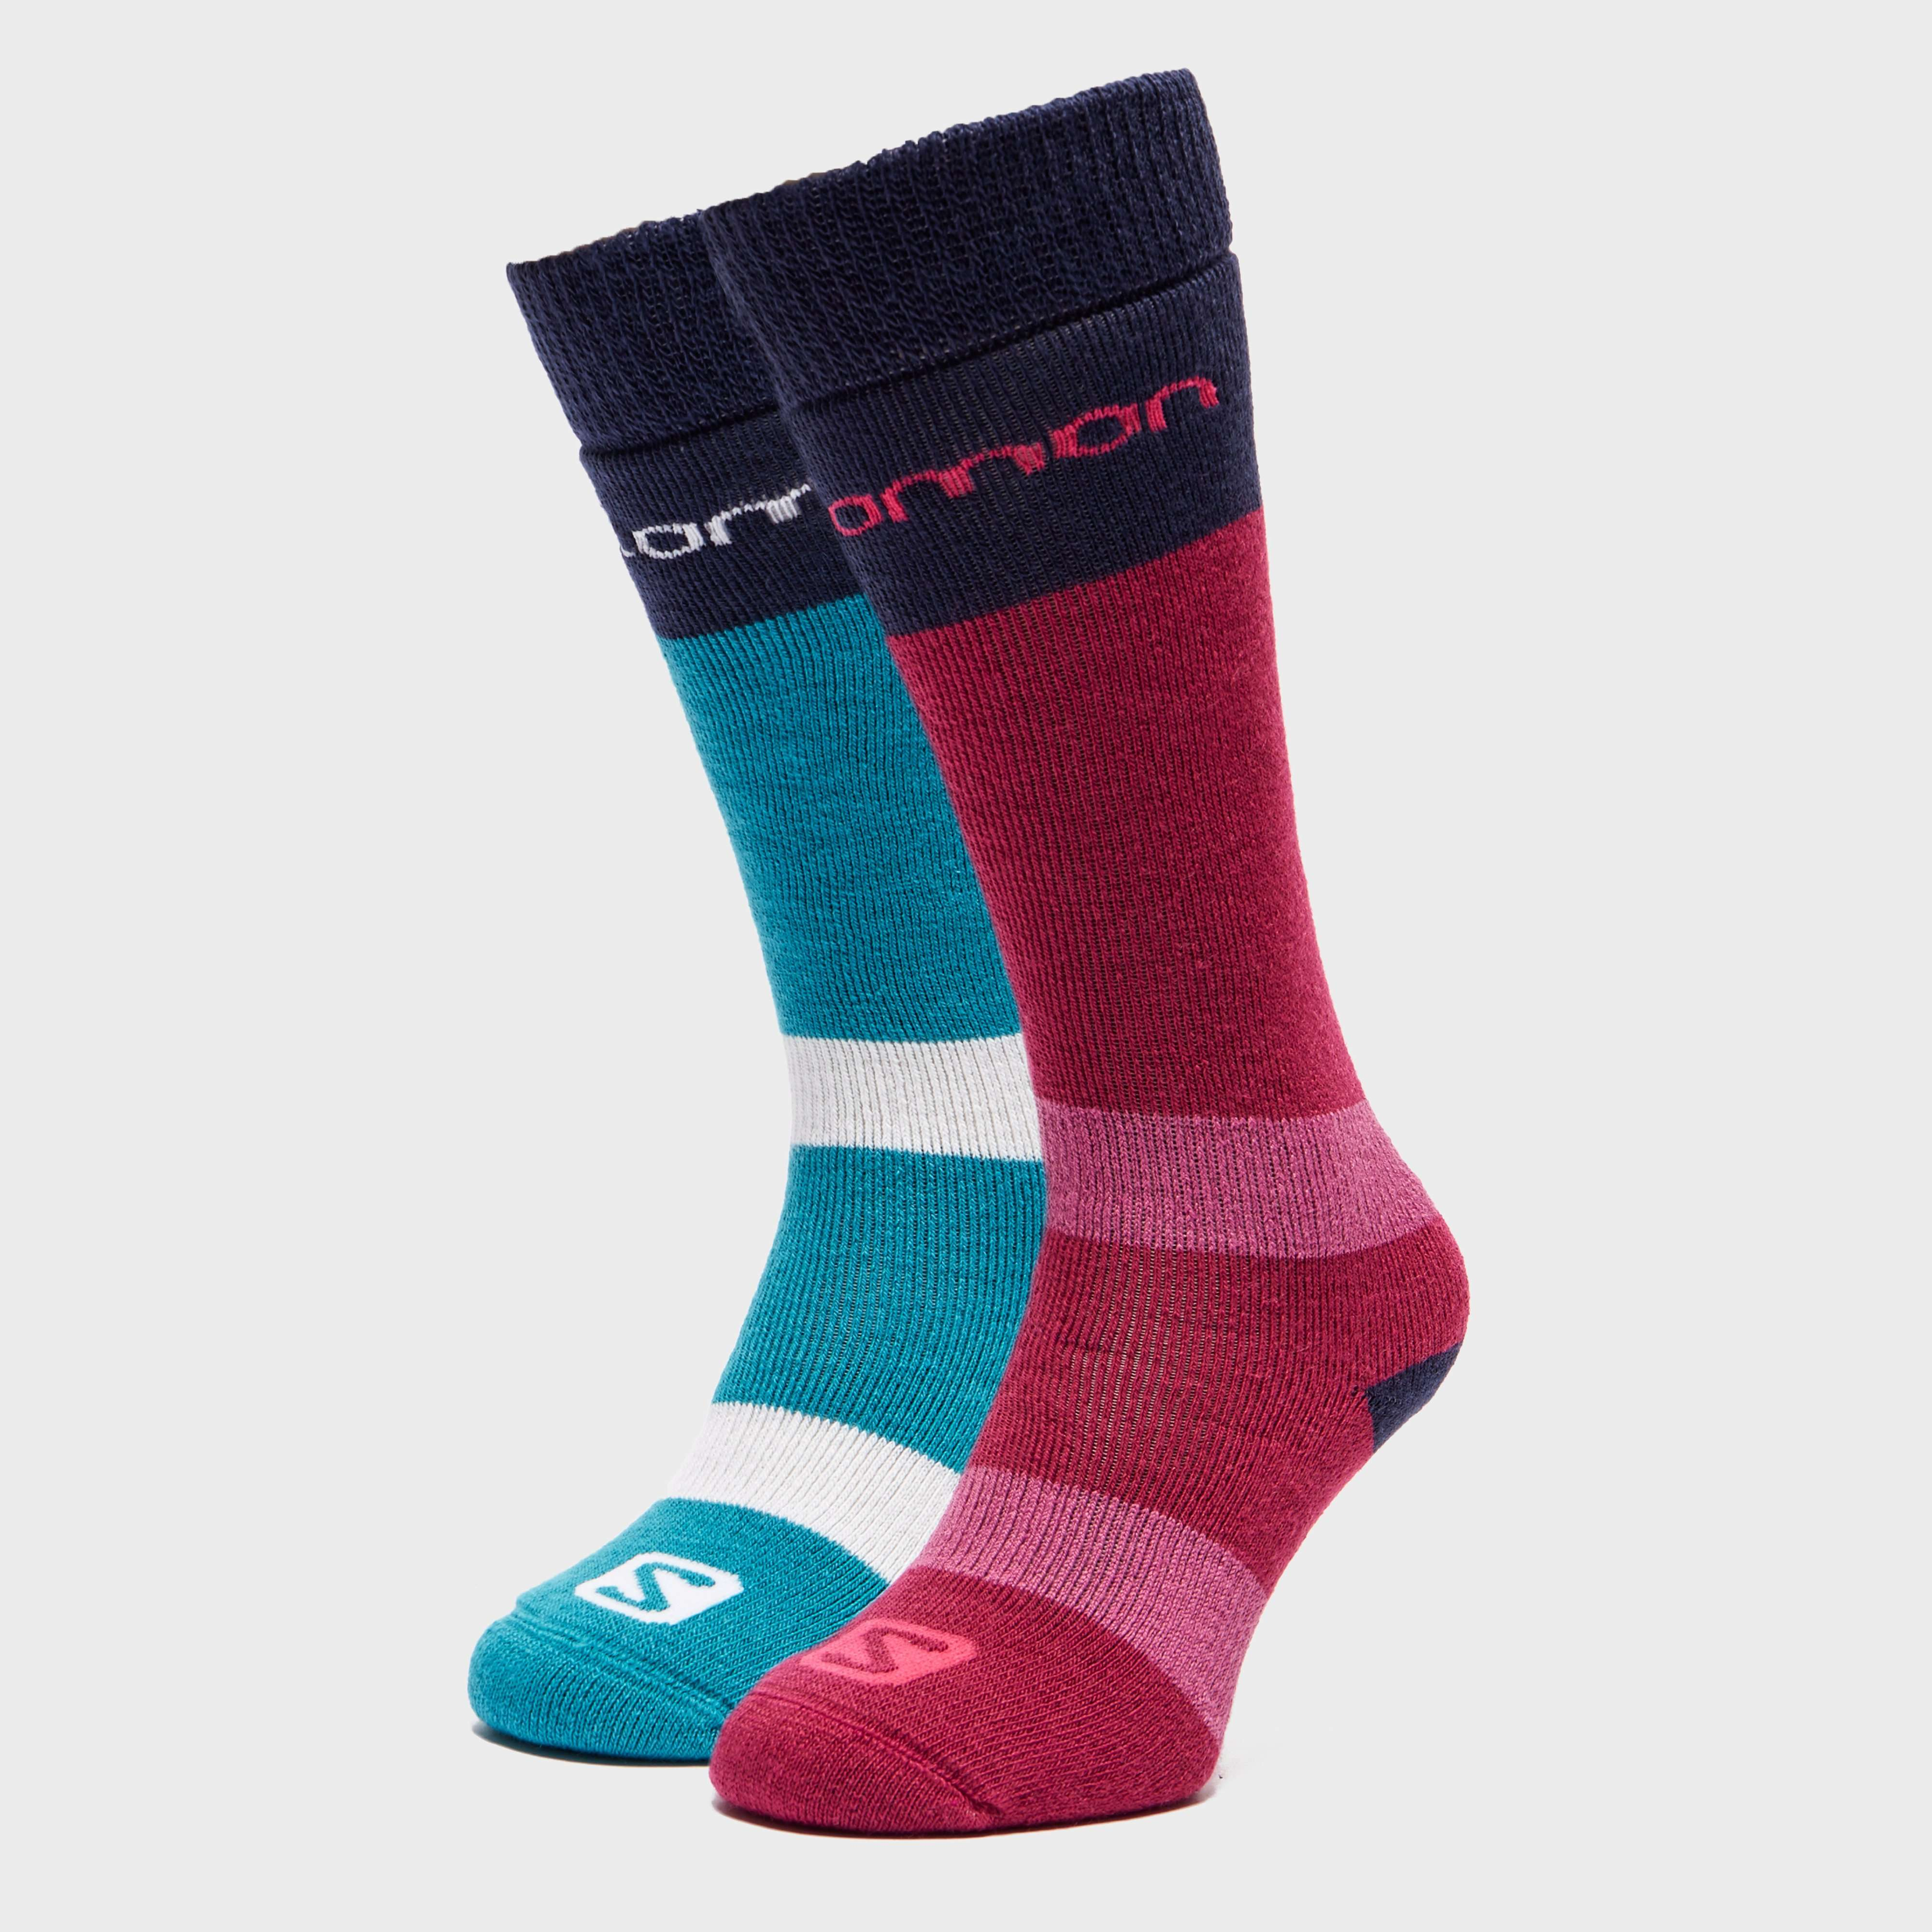 SALOMON SOCKS Women's All Round Ski Sock